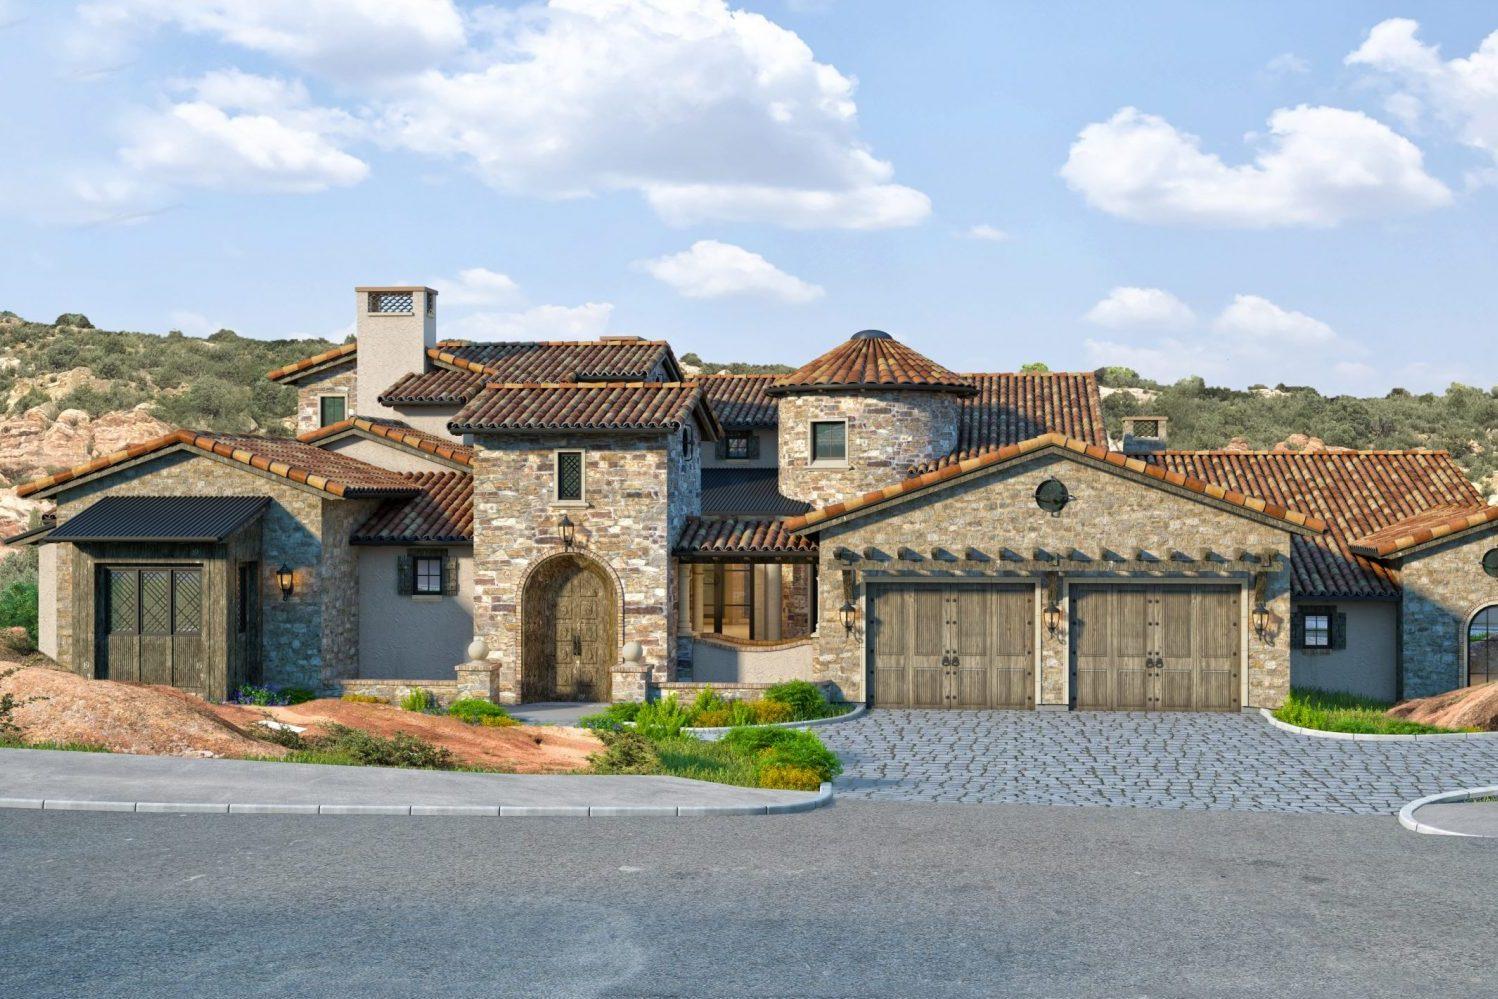 Custom, Tuscan style residential home designed by award-winning firm, Godden Sudik Architects